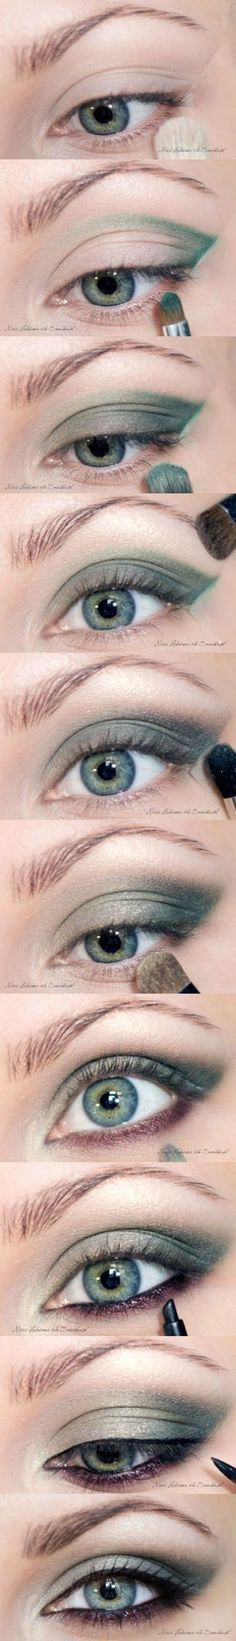 Makeup Tips and Tutorials For Girls With Green Eyes By Makeup Tutorials. For more great makeup tips, check out makeuptutorials.com